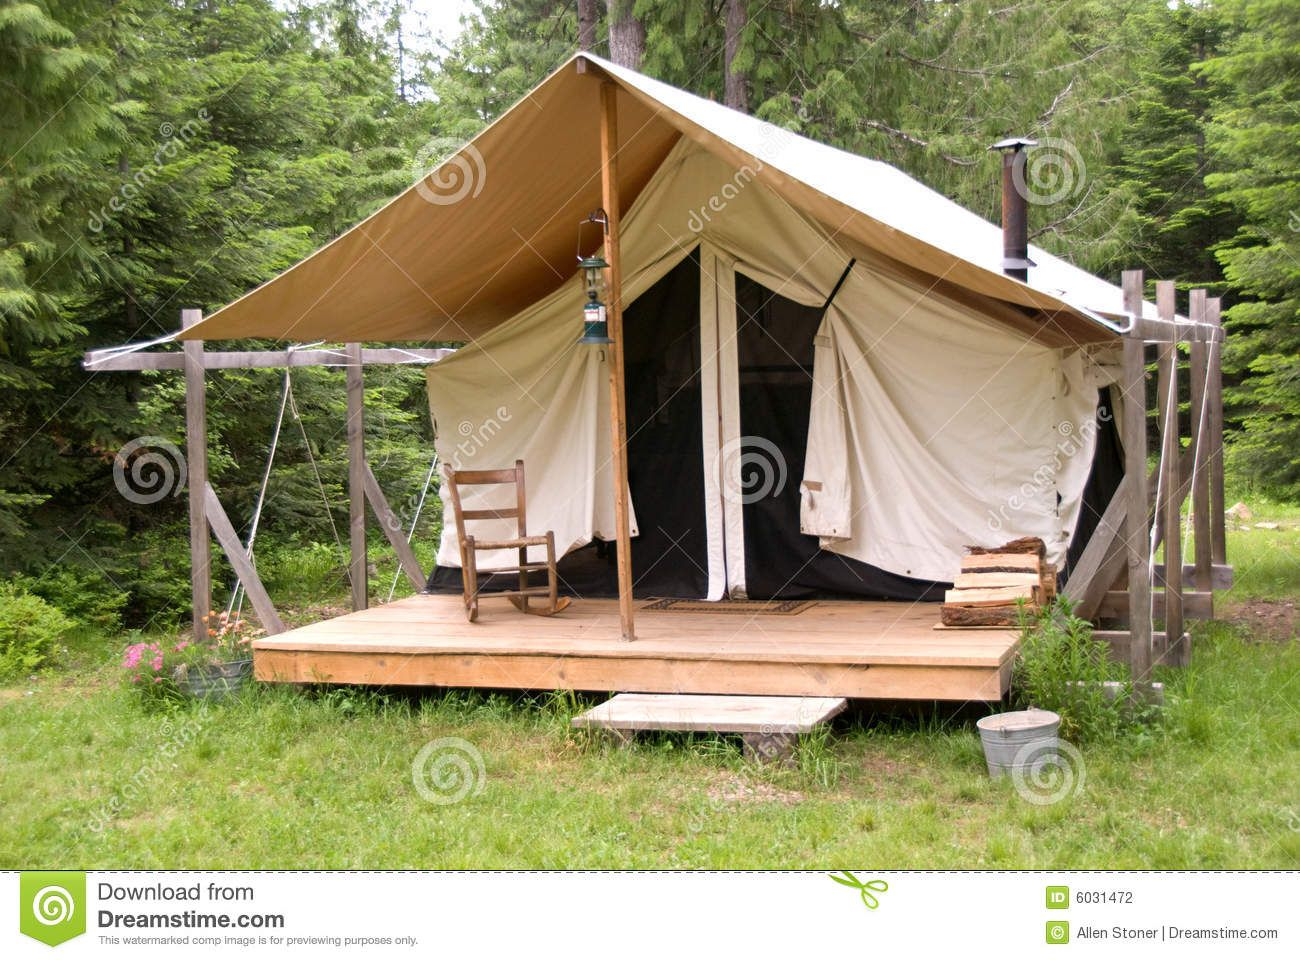 building a wooden platform for a c&ing tent base - Google Search & building a wooden platform for a camping tent base - Google Search ...